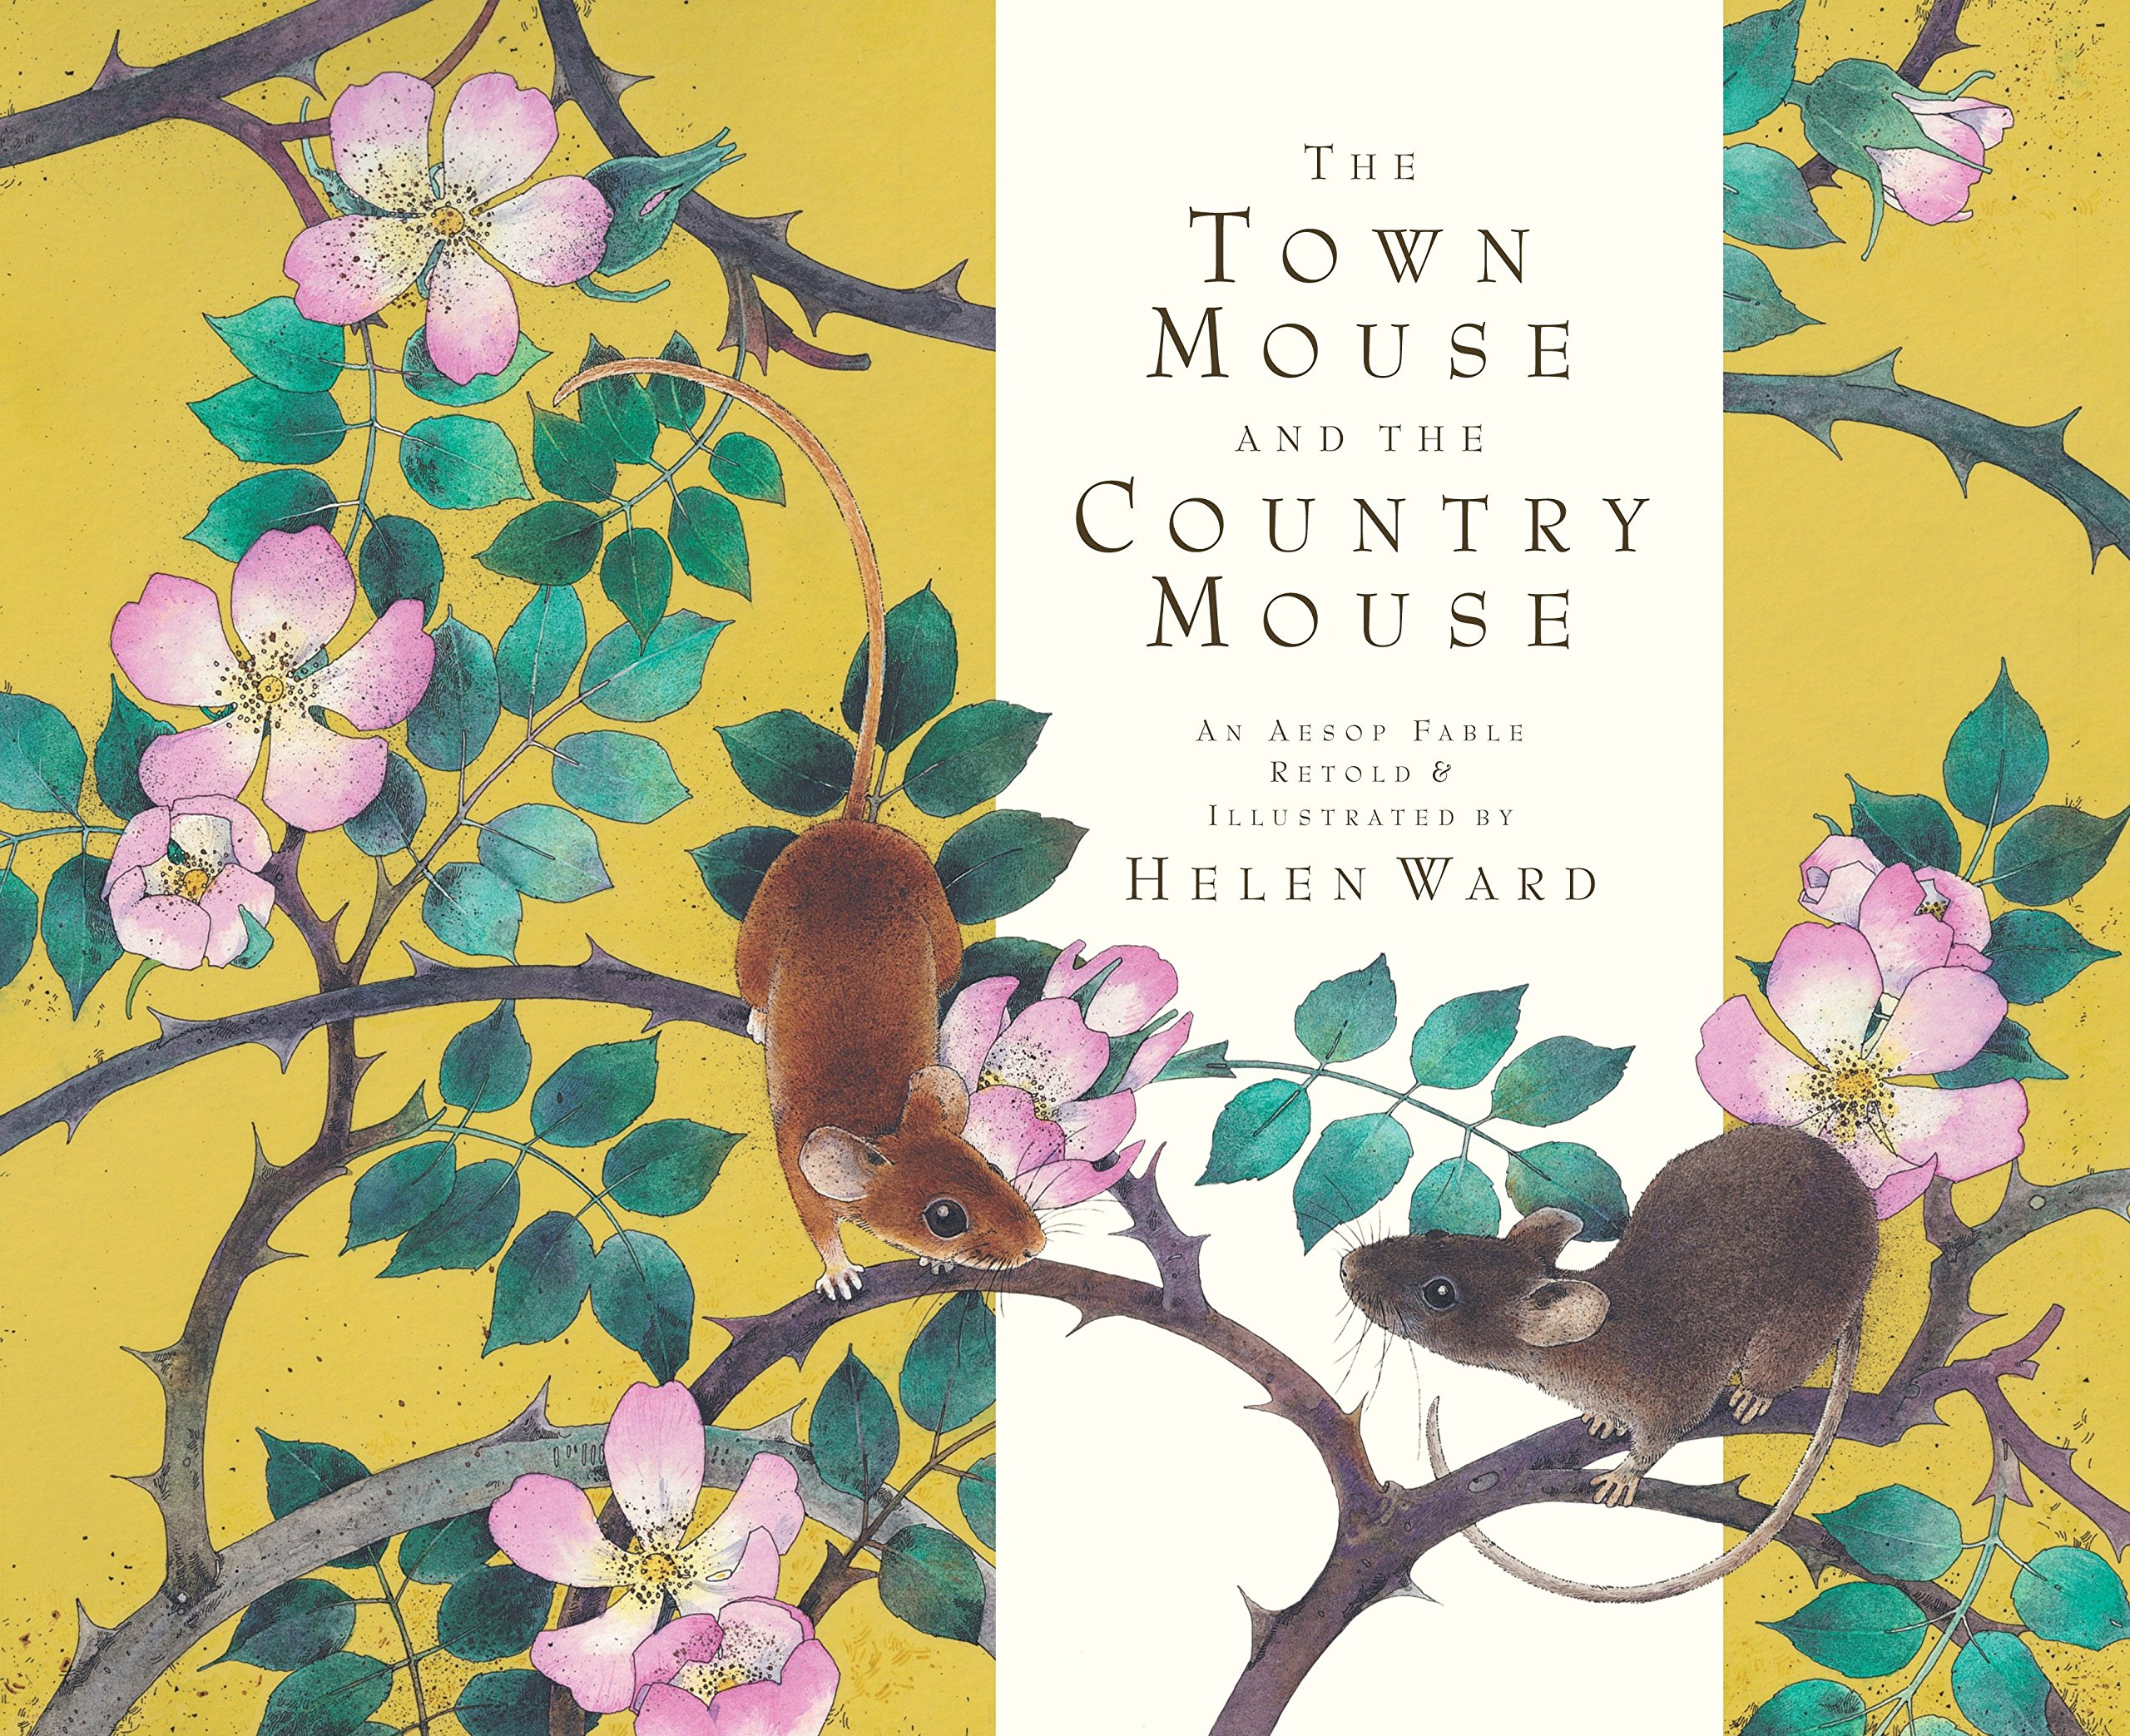 0c80db2e5dea The Town Mouse and the Country Mouse  Helen Ward  9780763660987 ...